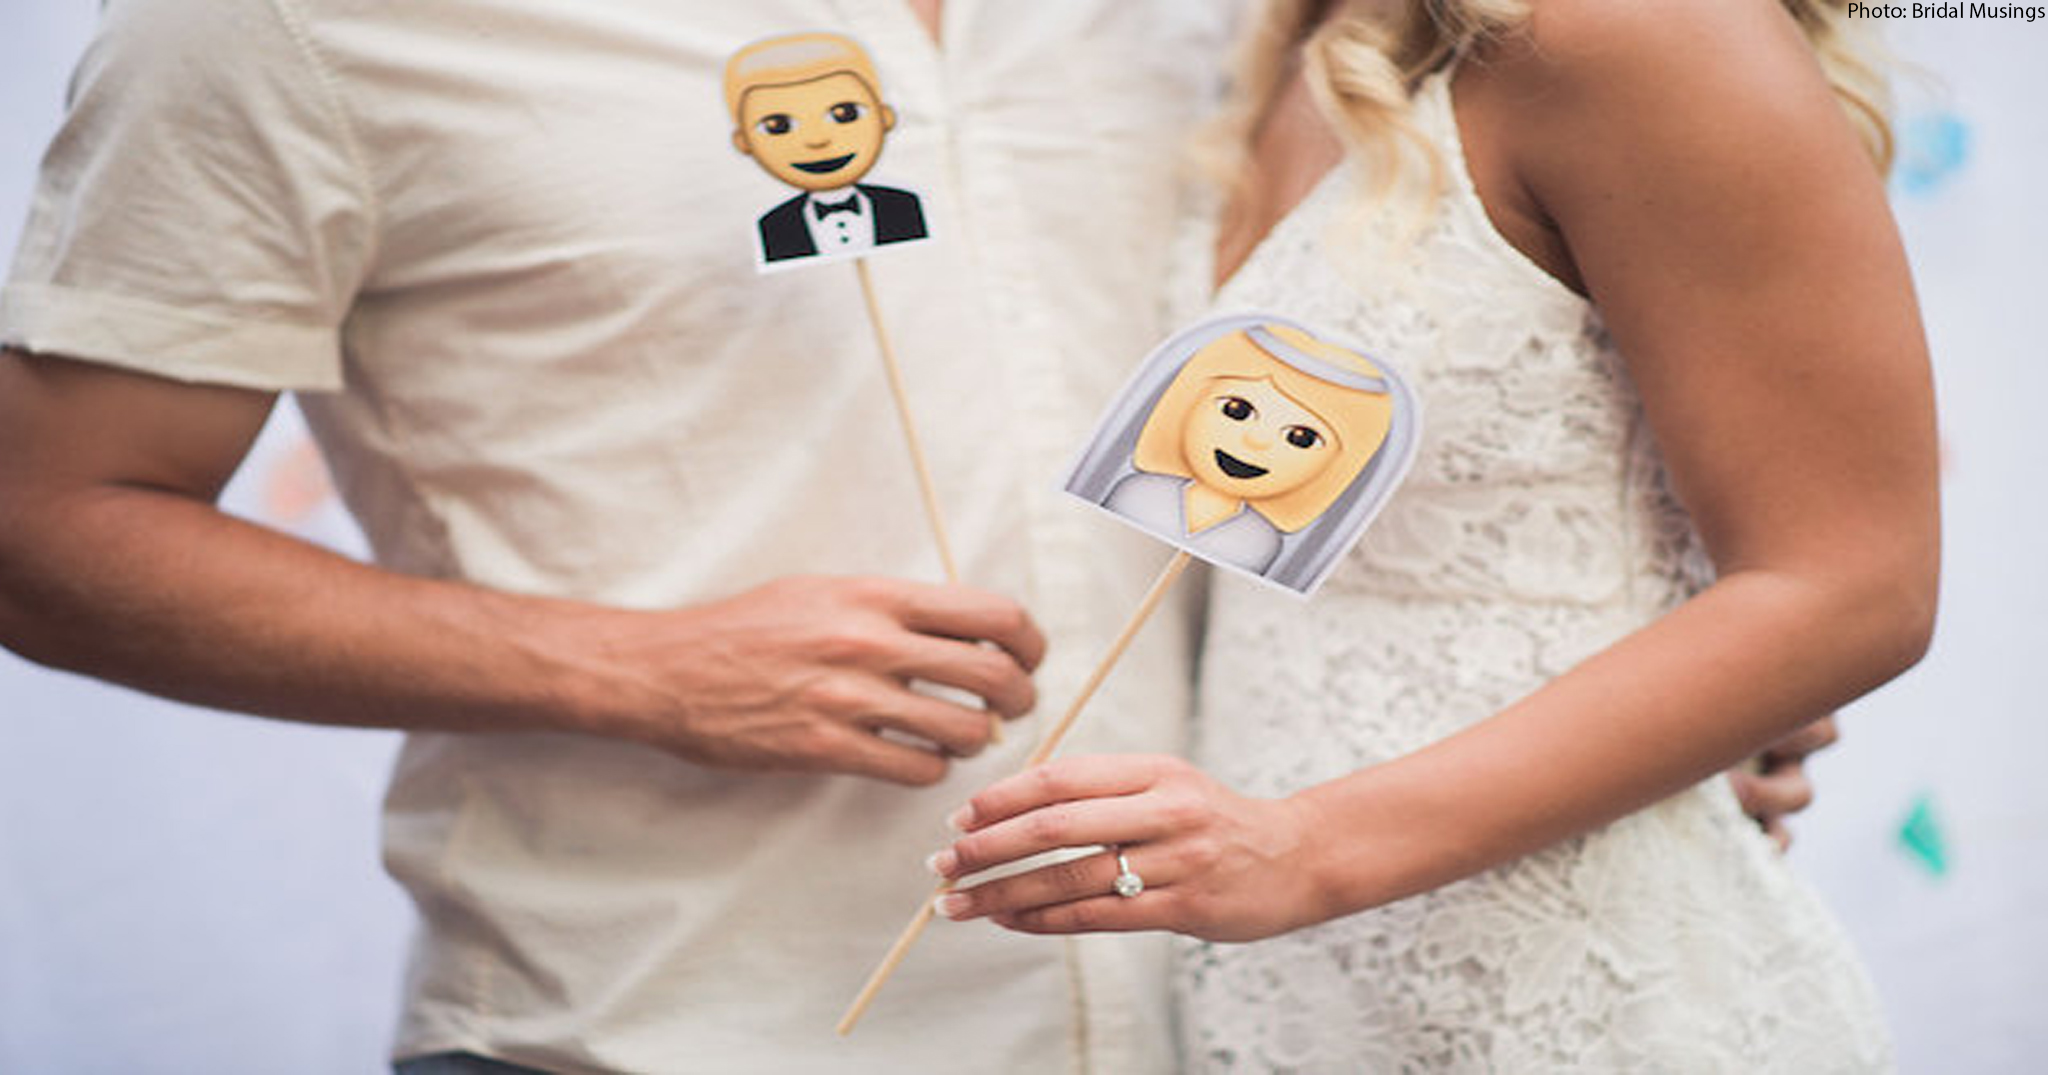 BridalPulse: From One Bride-to-Be to the Next: Should You Have An Engagement Party | Photo via: Bridal Musings | Follow us @bridalpulse for more wedding inspiration!